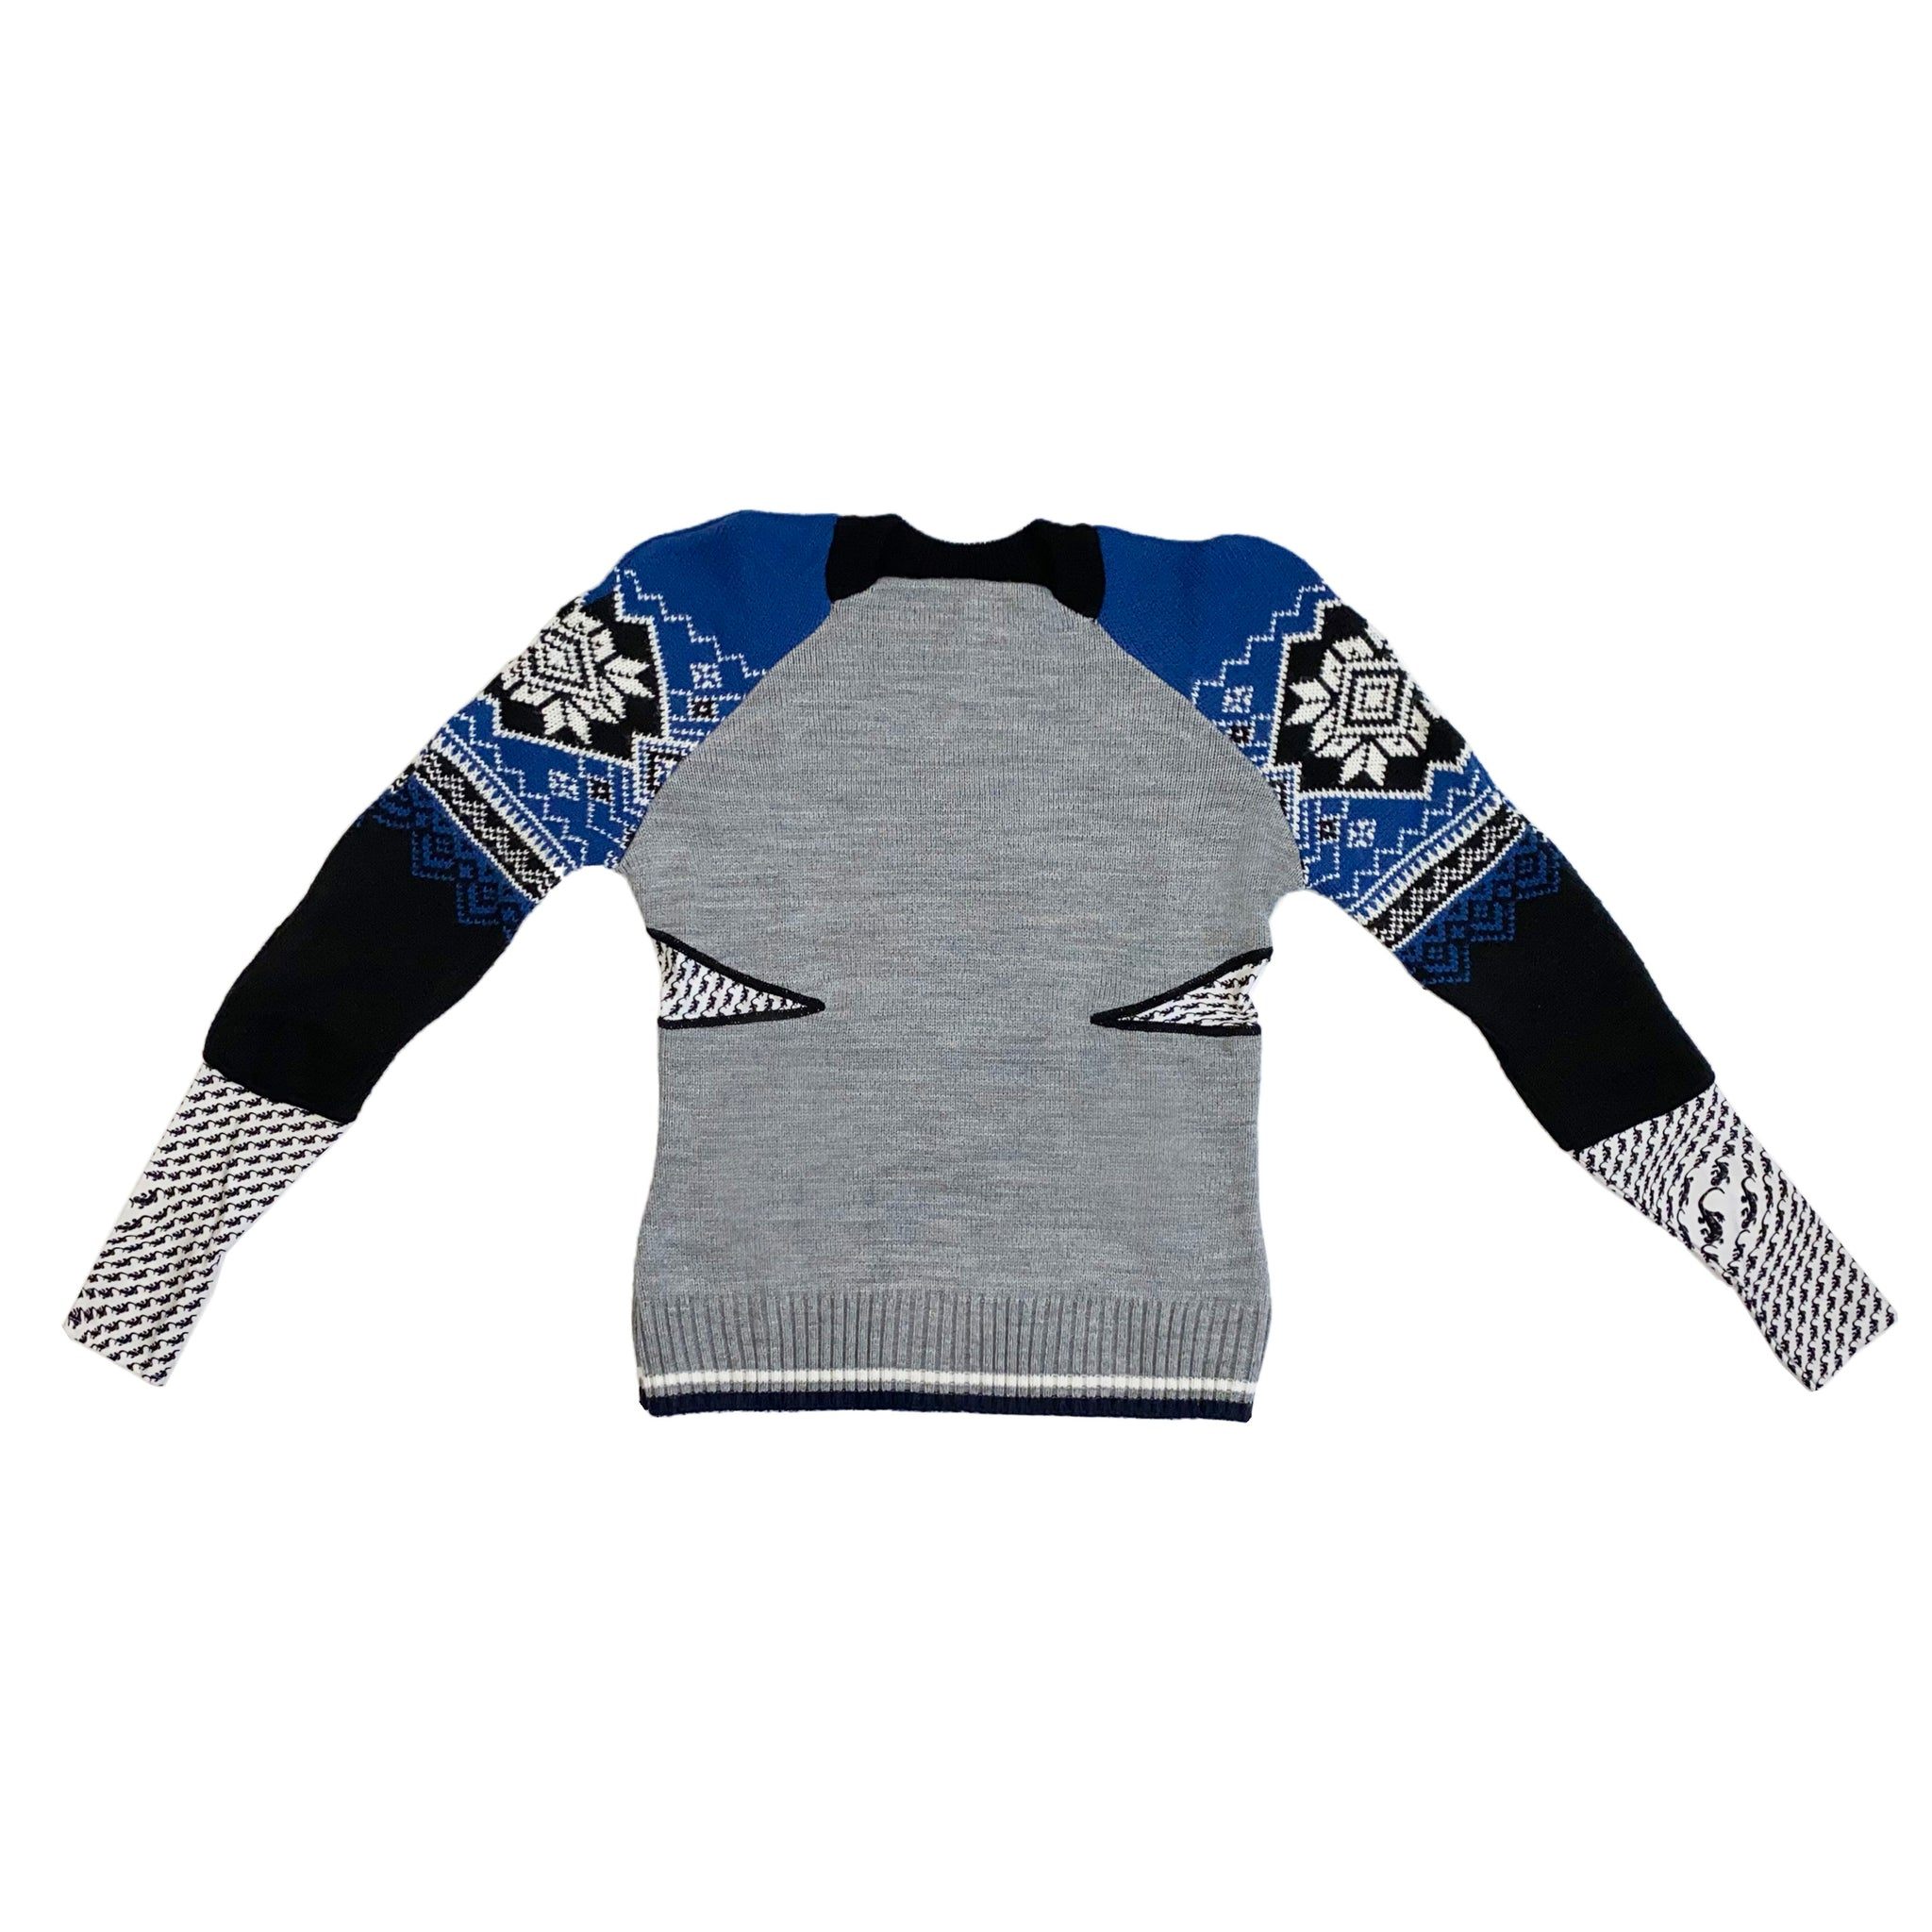 Knit Melange Hybrid Jumper Grey